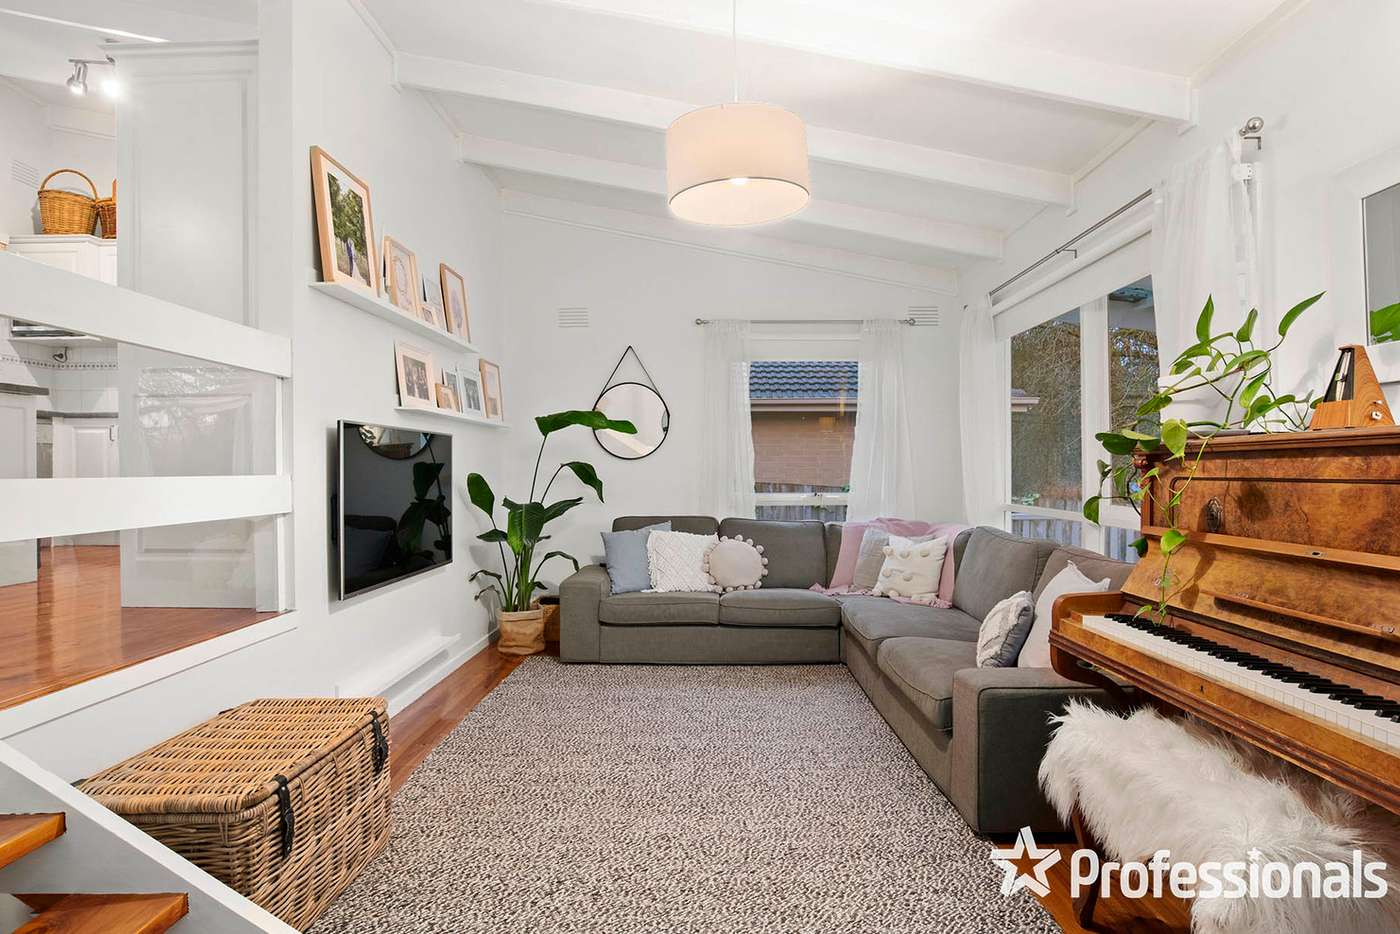 Sixth view of Homely house listing, 131 Belmont Road East, Croydon South VIC 3136